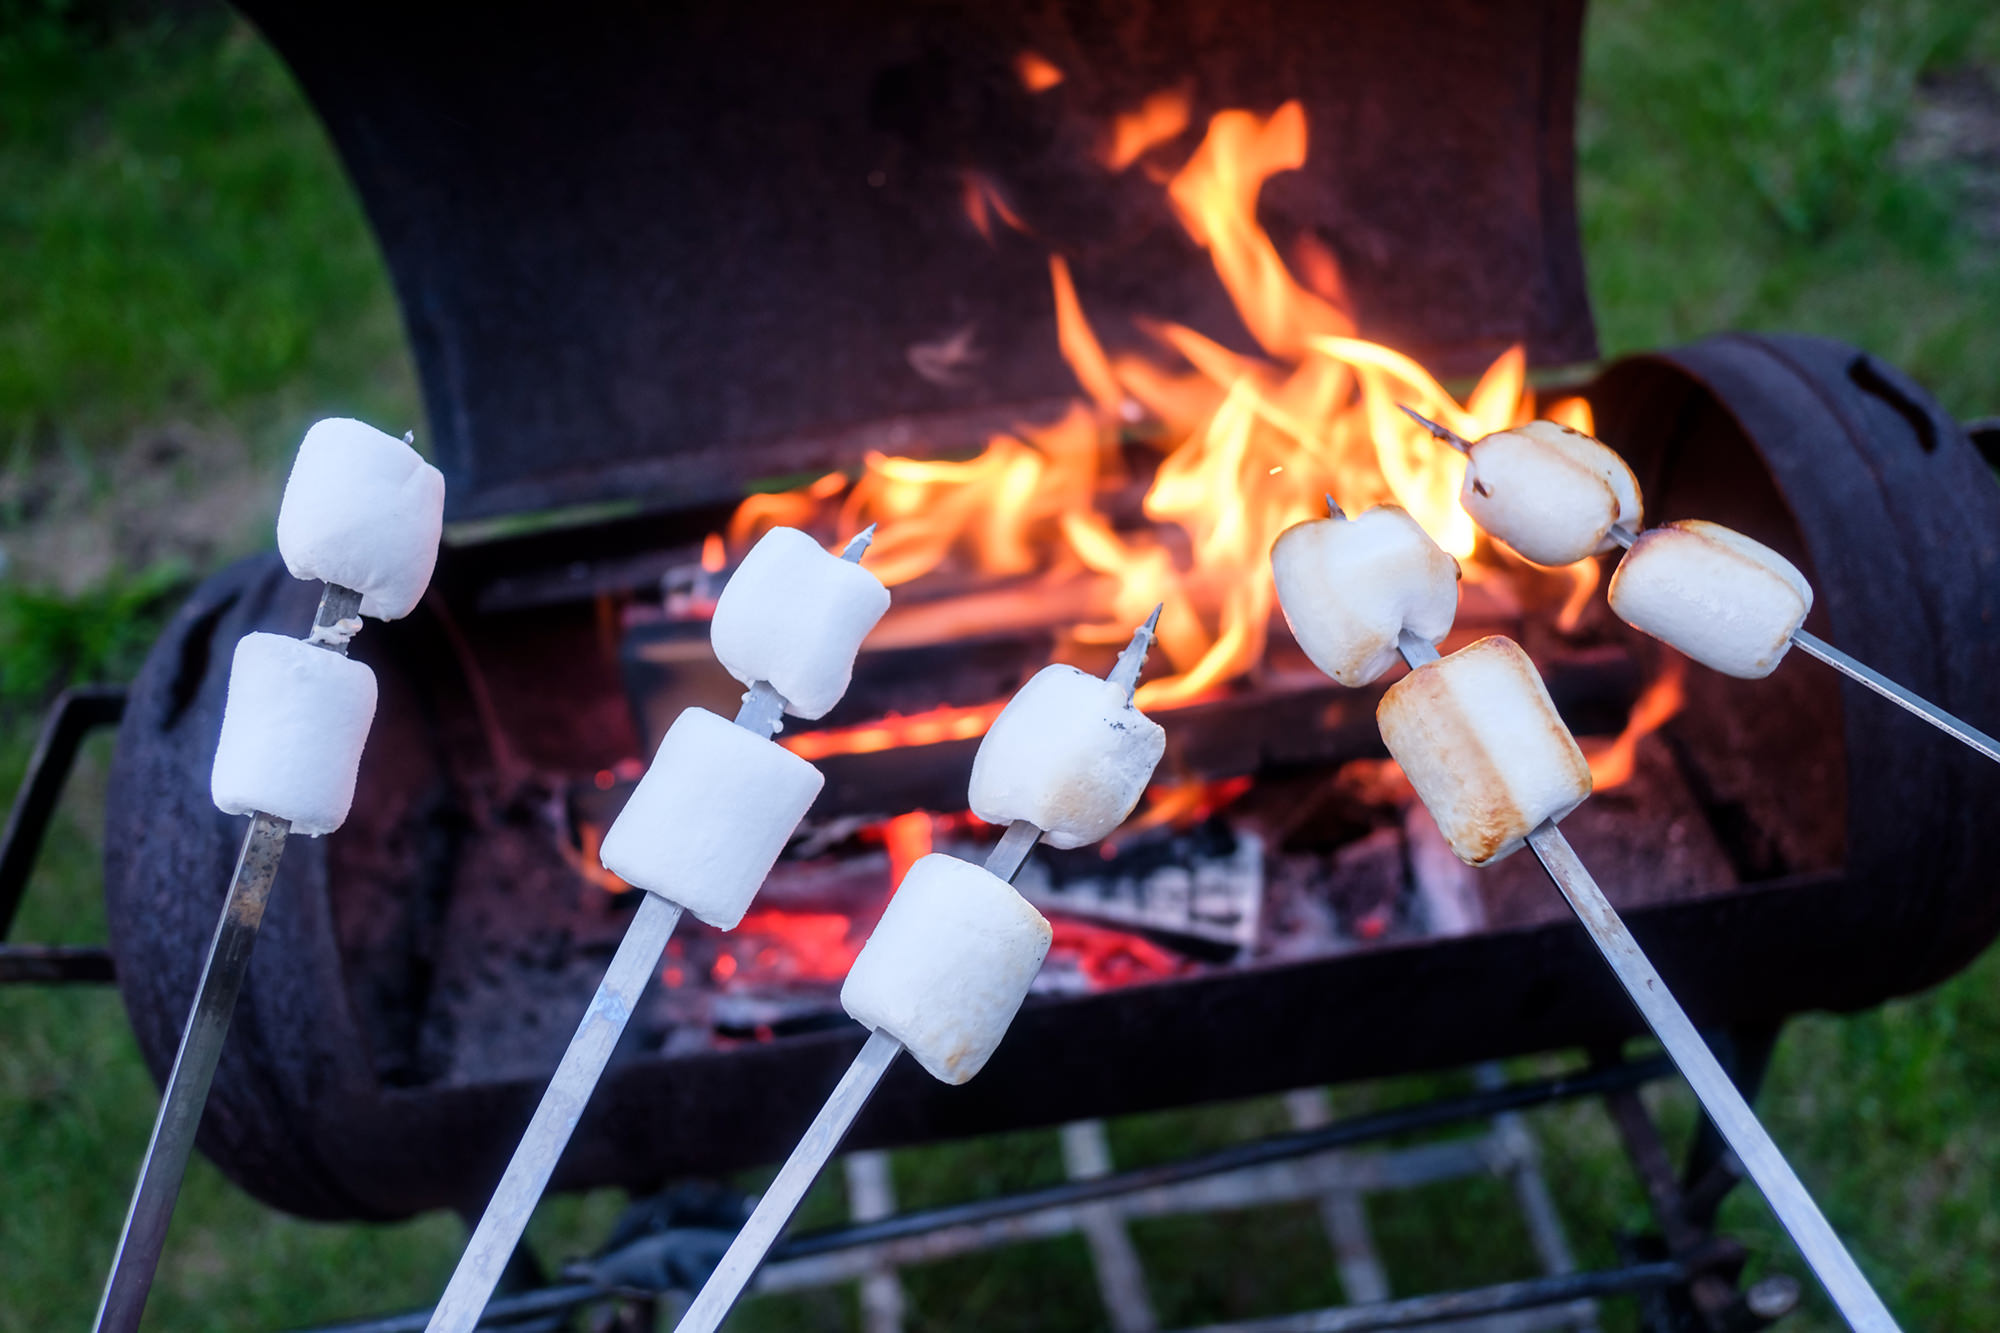 photodune-21453945-marshmallow-on-metal-skewer-xl.jpg